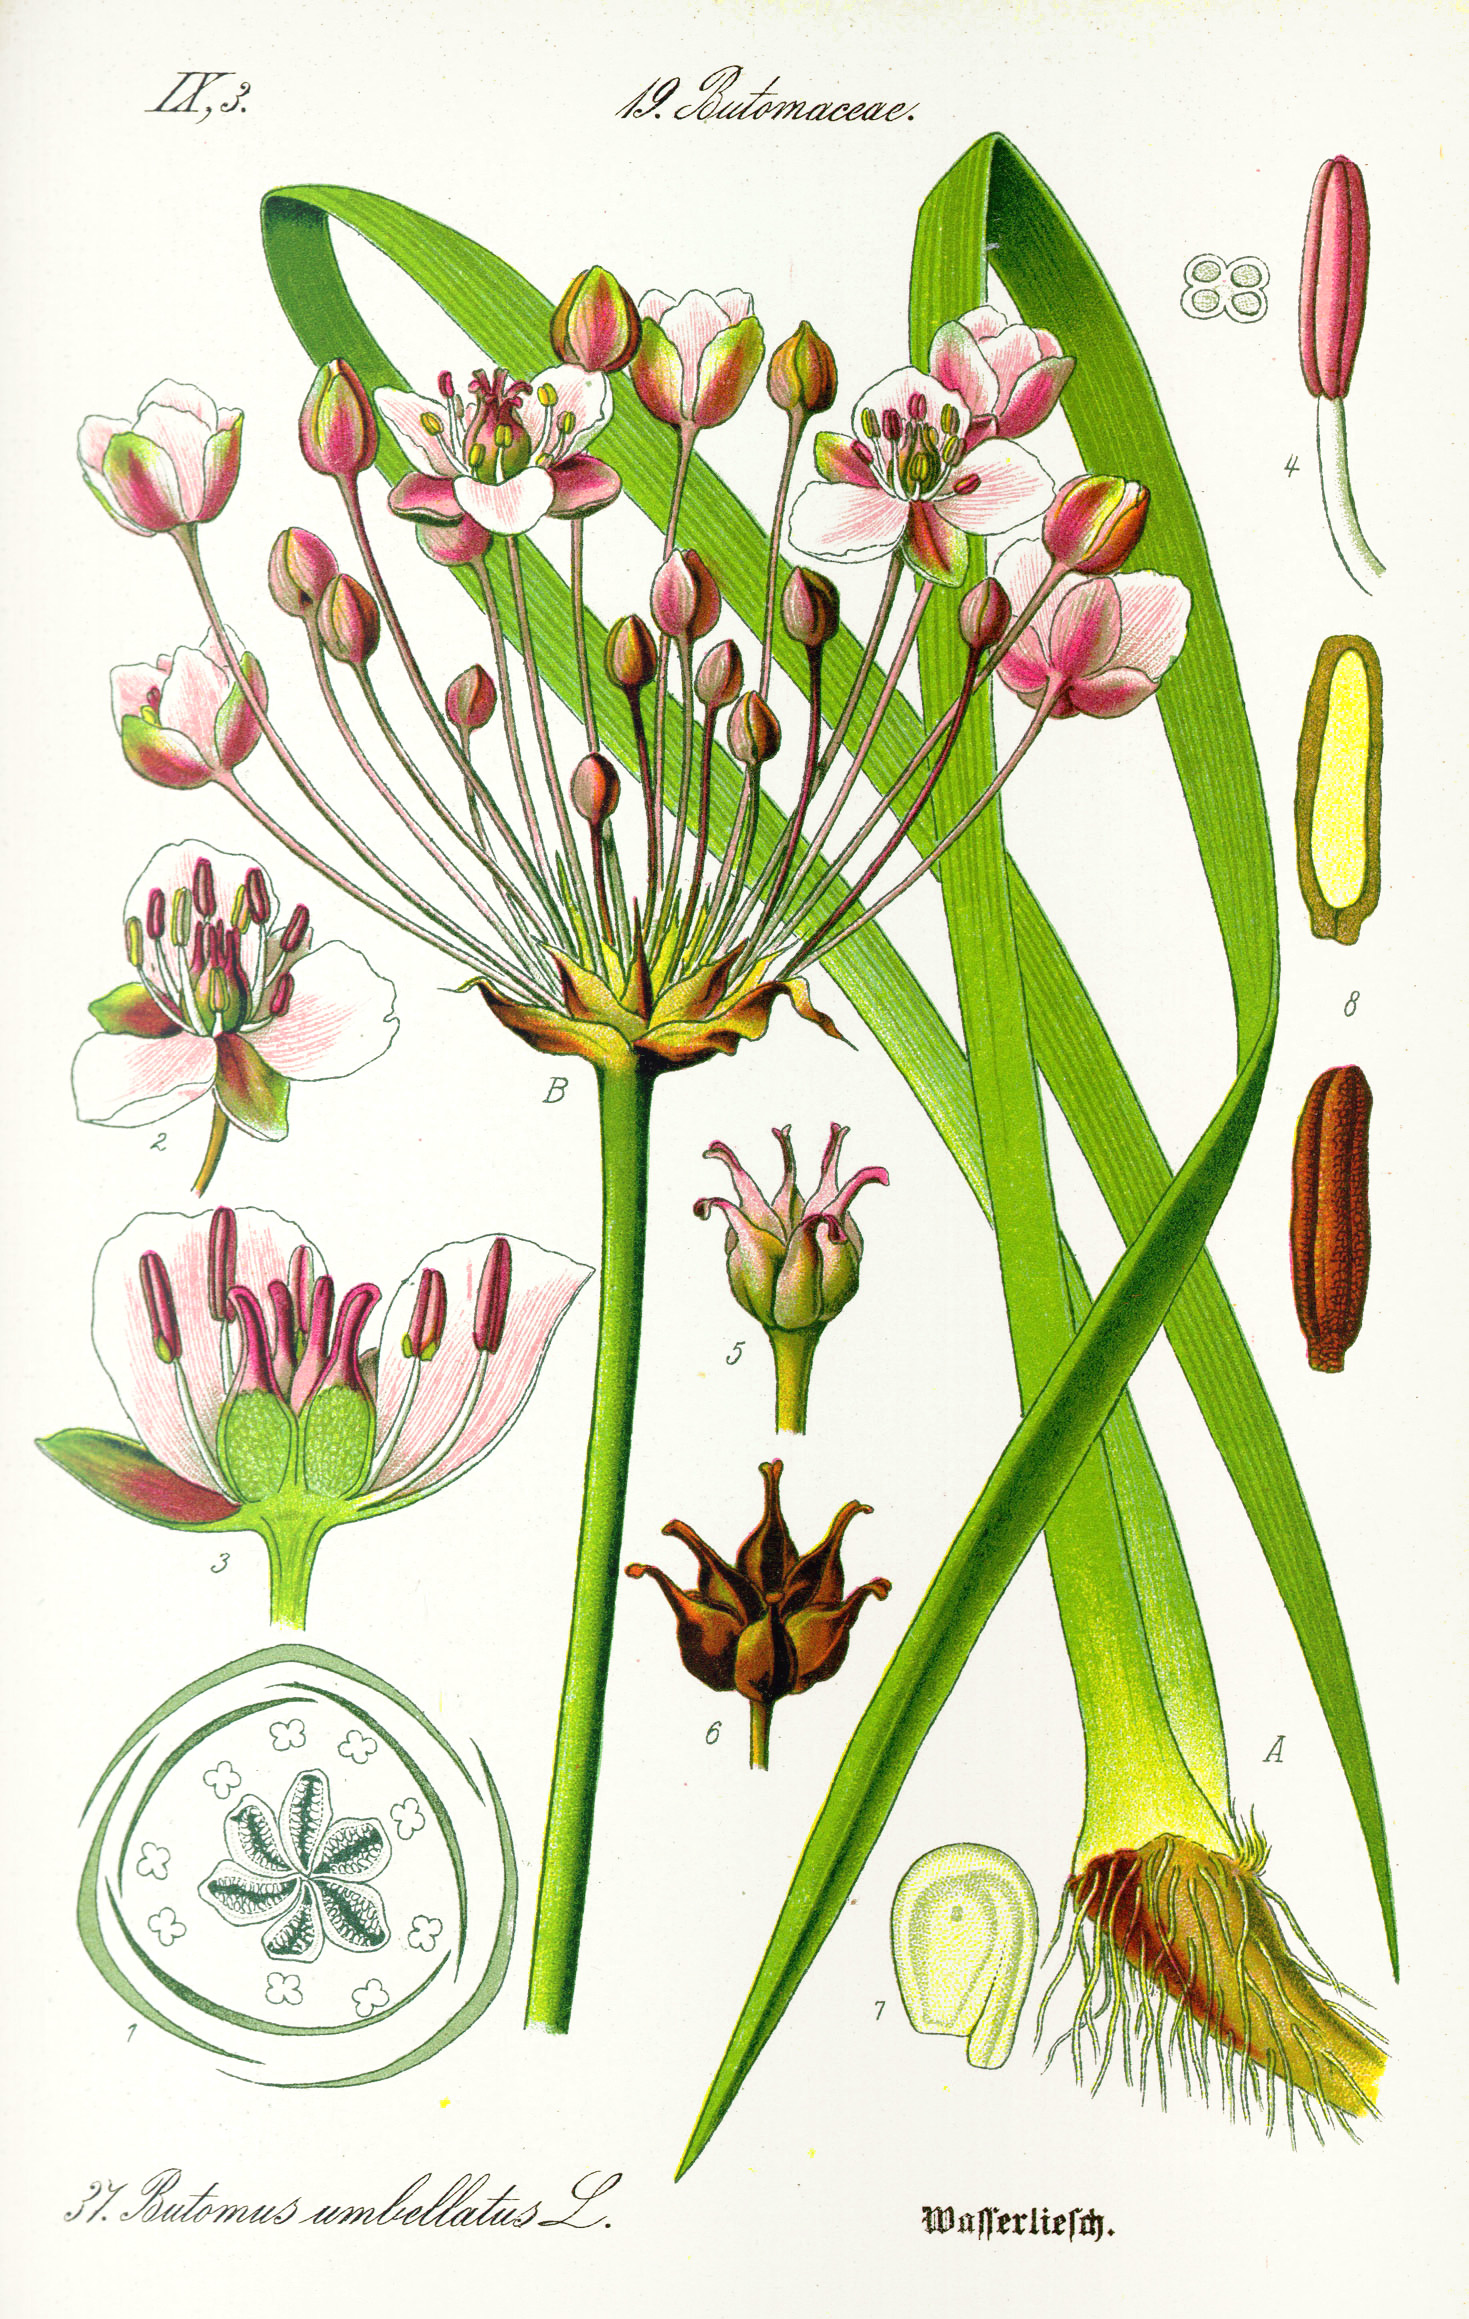 Illustration_Butomus_umbellatus1.jpg?uselang=nb